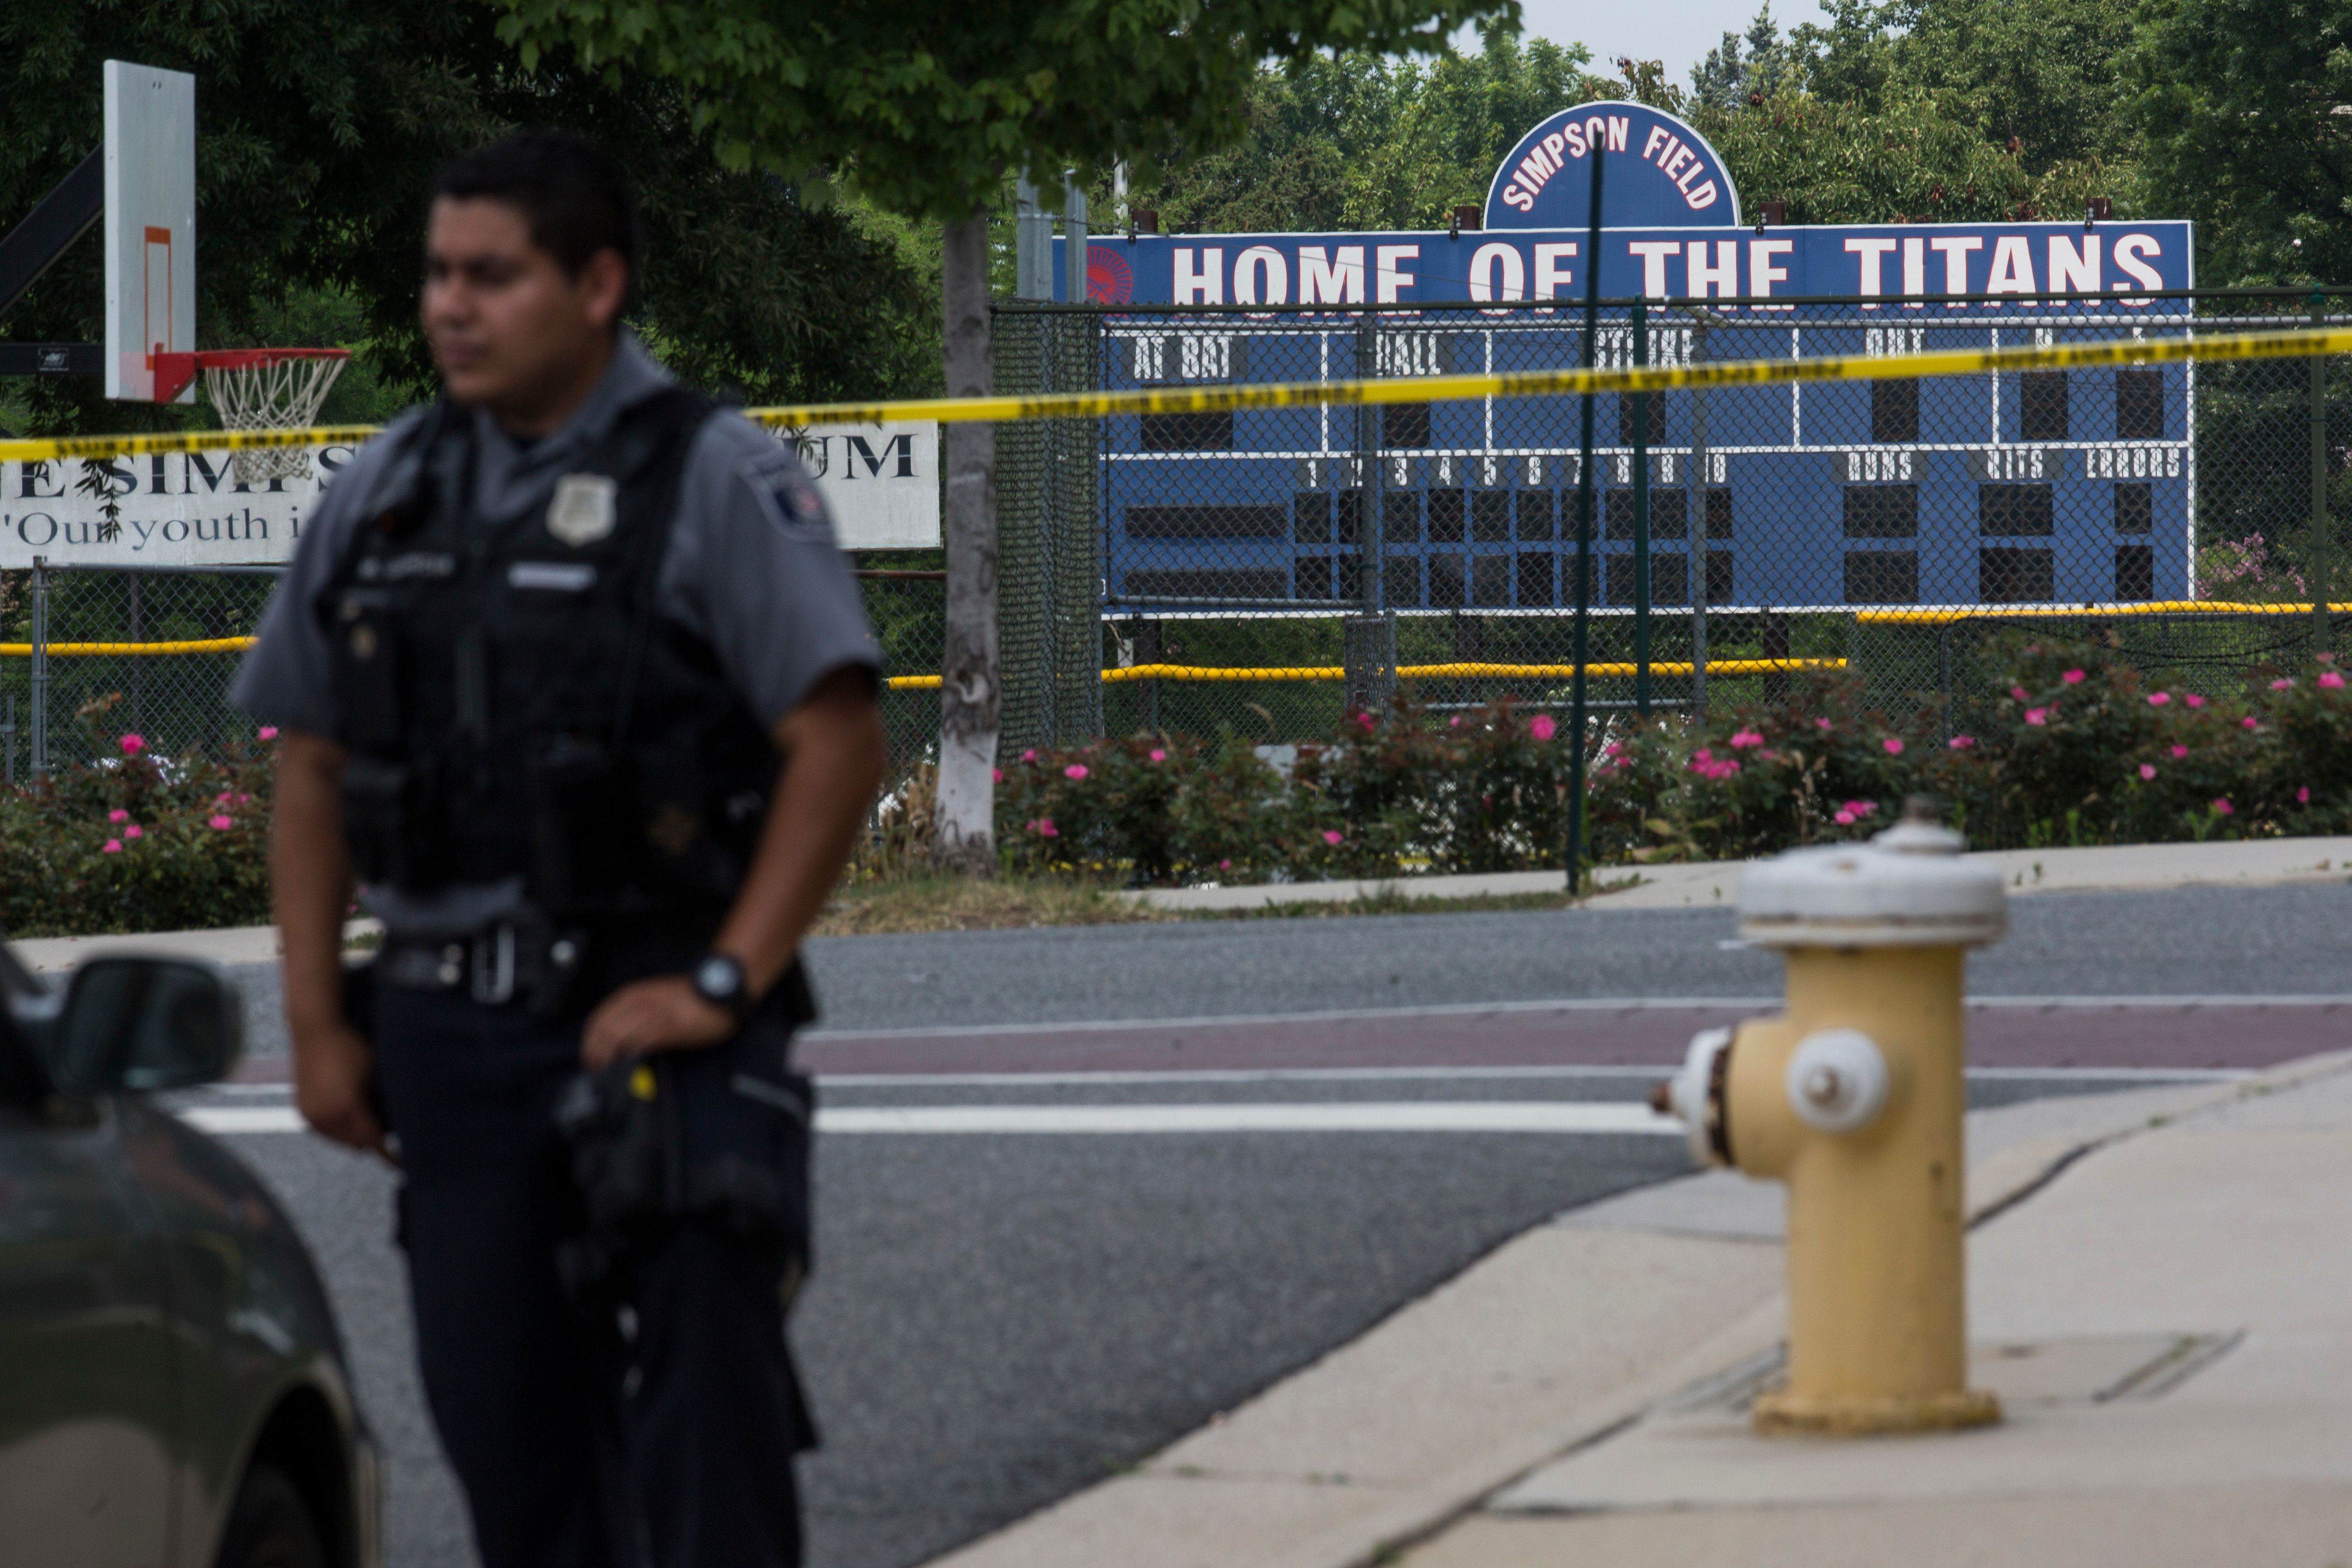 ALEXANDRIA, VA - JUNE 14: A police officer stands near Eugene Simpson Field, the site where a gunman opened fire June 14, 2017 in Alexandria, Virginia. Multiple injuries were reported from the instance, the site where a congressional baseball team was holding an early morning practice, including House Republican Whip Steve Scalise (R-LA) who was reportedly shot in the hip. (Photo by Zach Gibson/Getty Images)